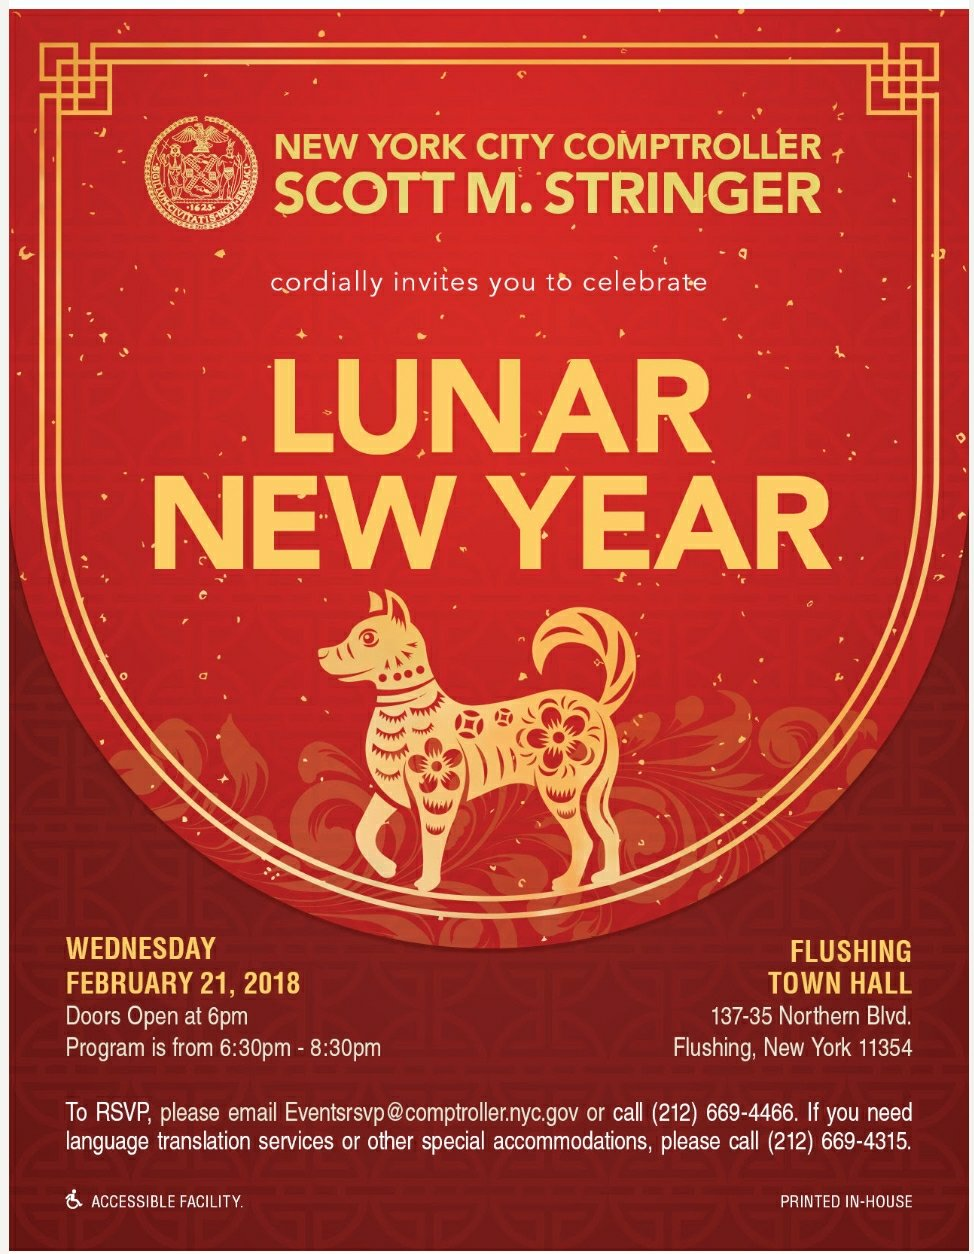 Celebrate Lunar New Year, February 21